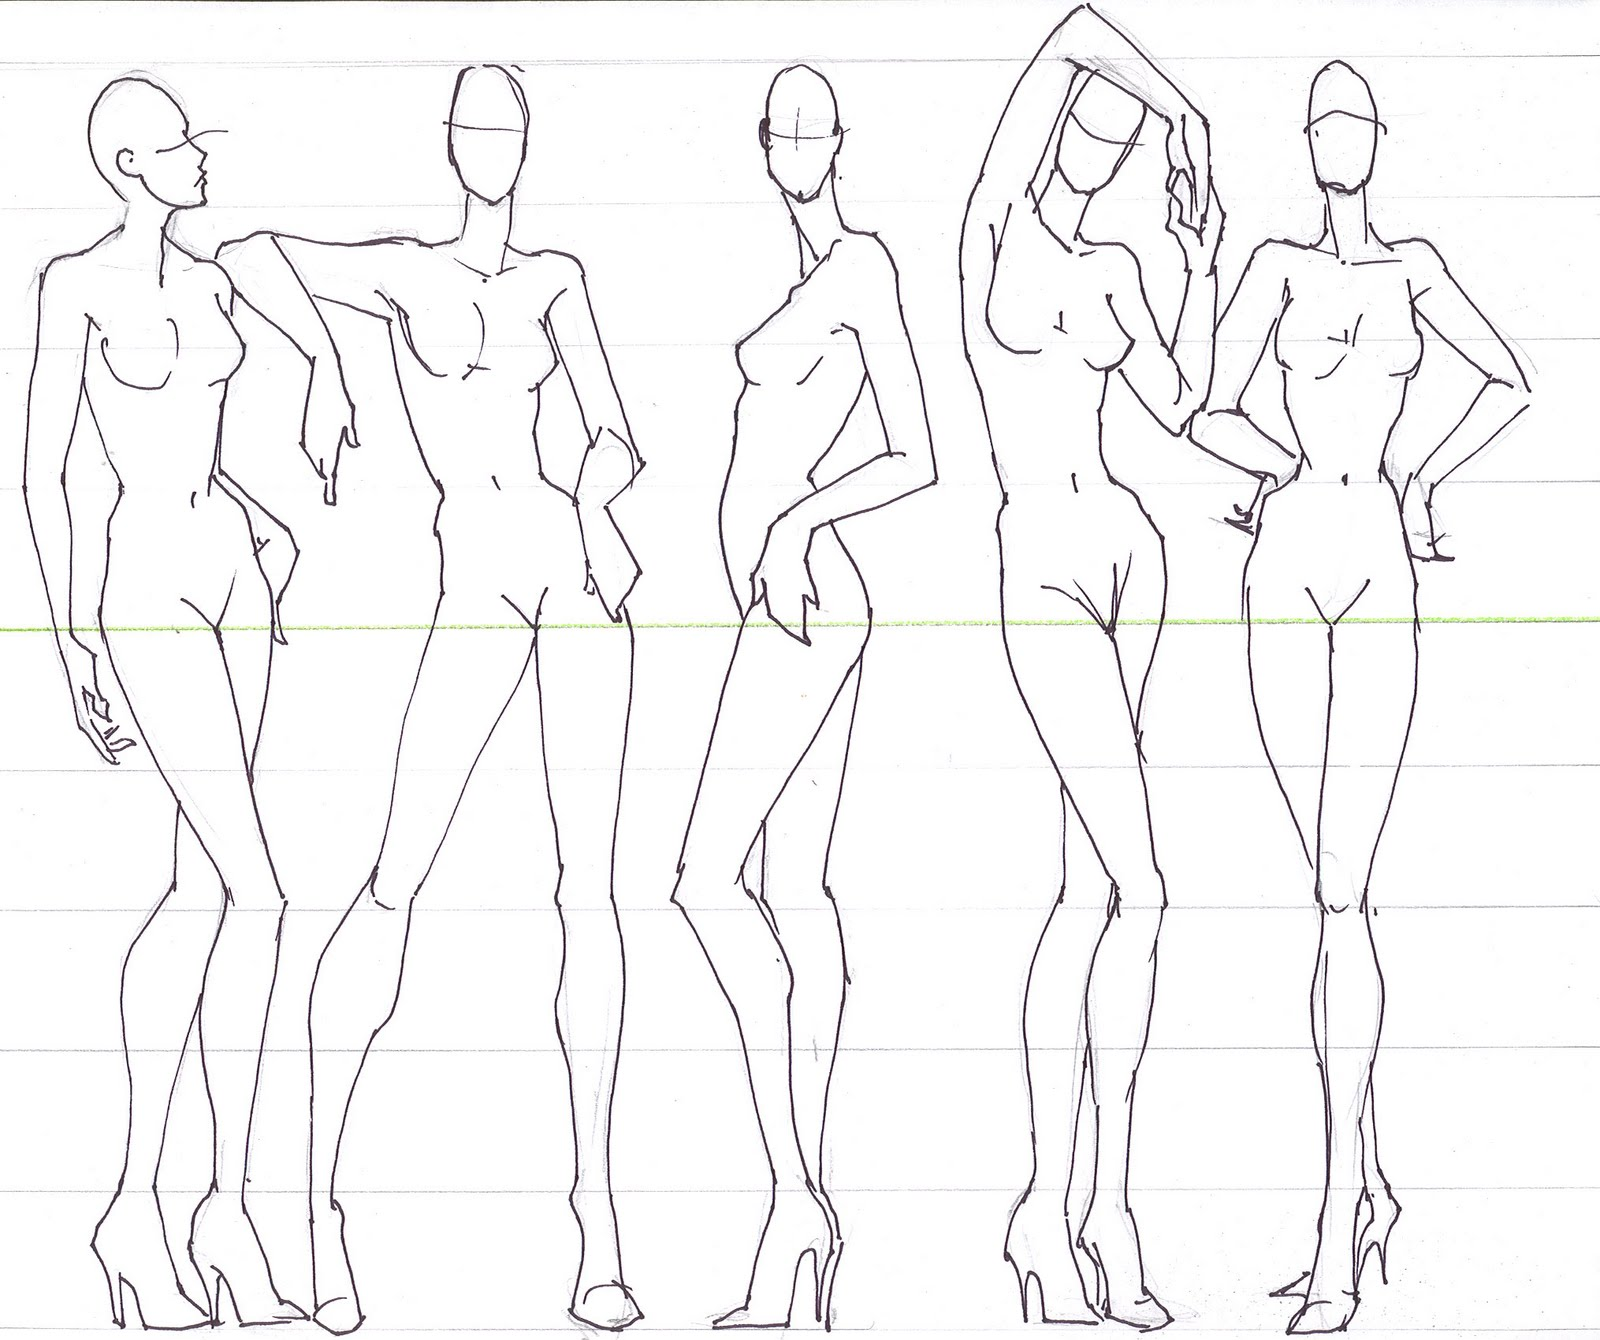 Human figure drawing template at getdrawings free for personal 1600x1340 size 8 and too big to model maxwellsz